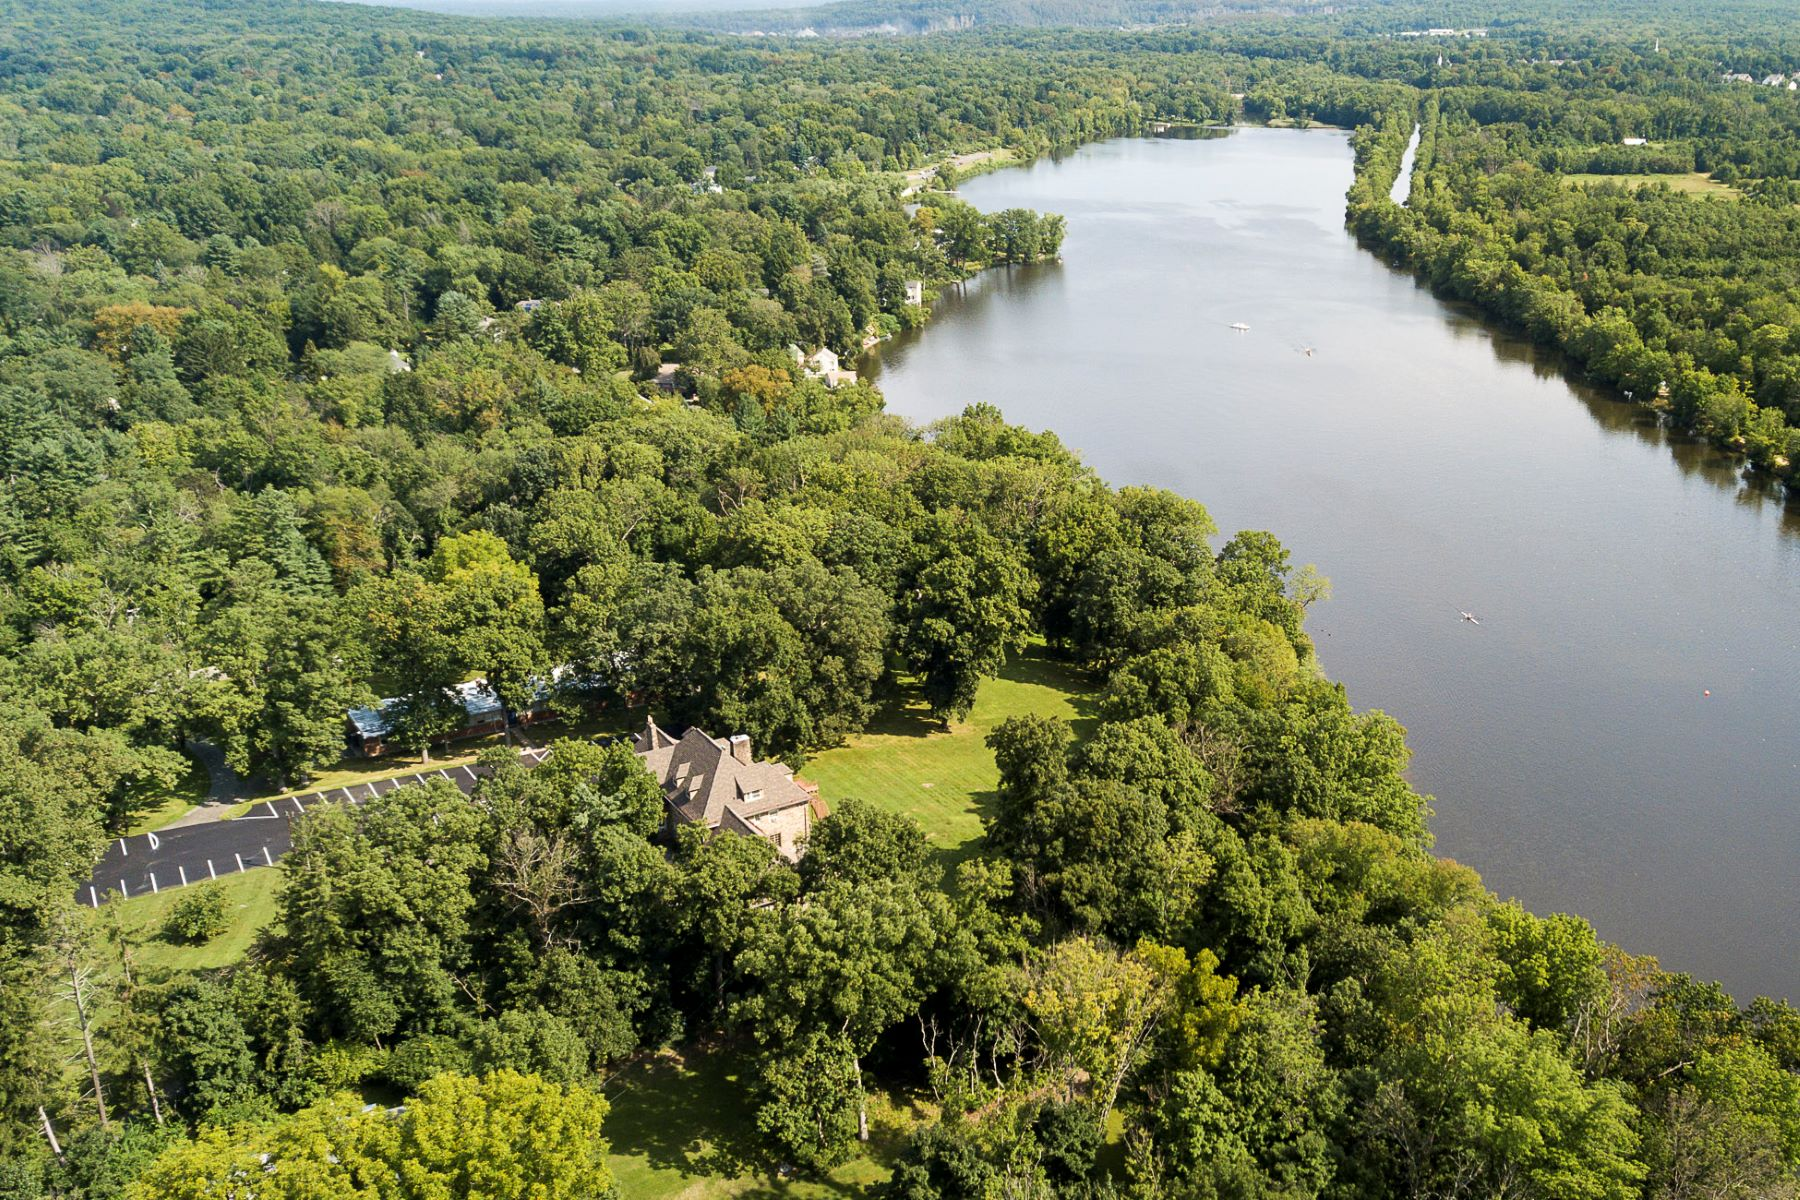 Land for Sale at Unprecedented Lake-Front Development Opportunity 601 Prospect Avenue, Princeton, New Jersey 08540 United States